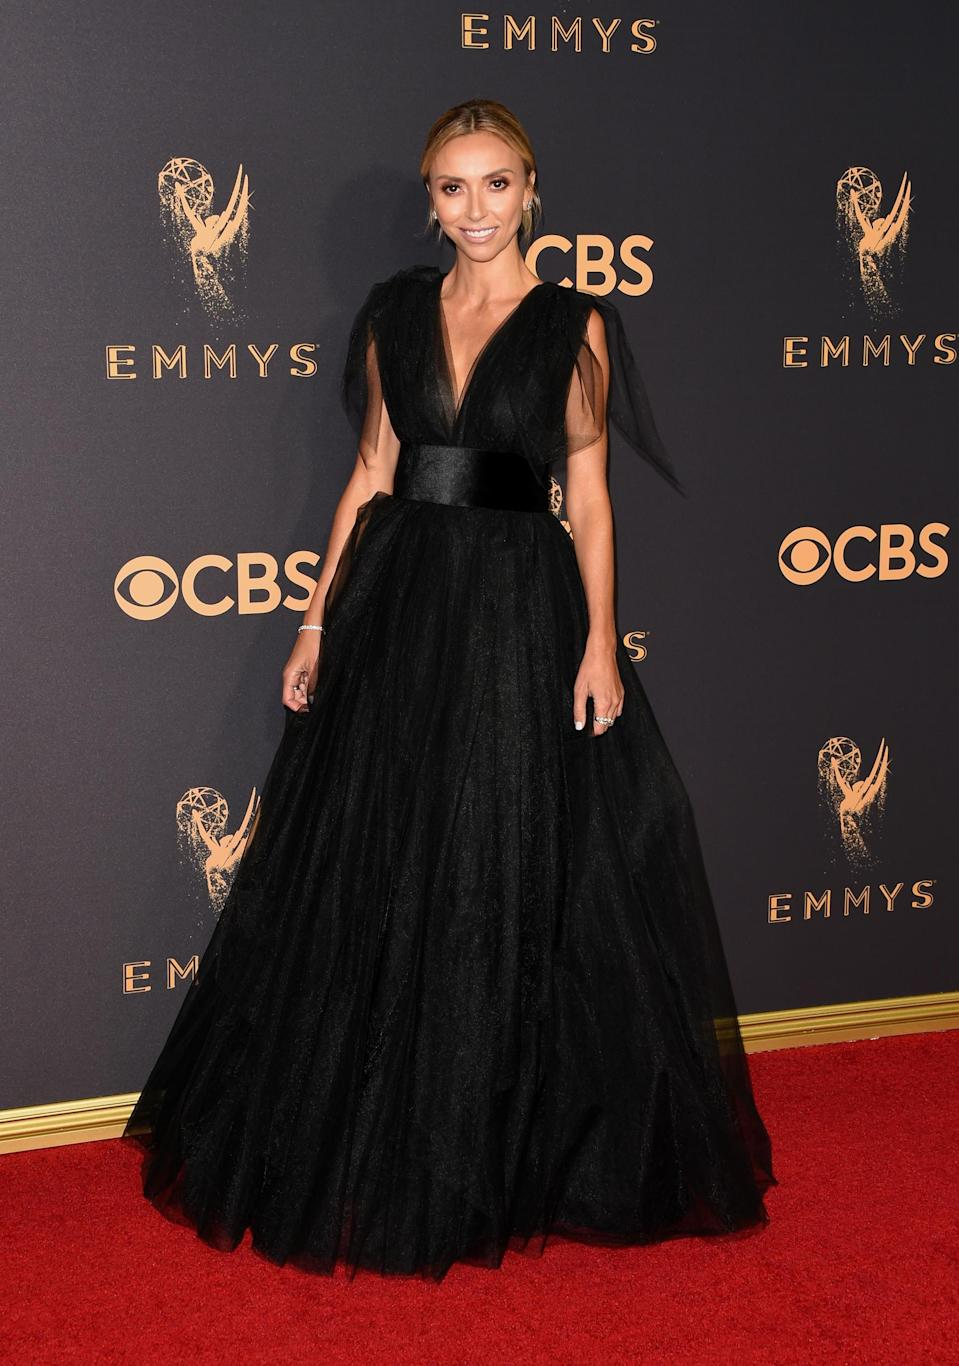 <p>Giuliana Rancic attends the 69th Primetime Emmy Awards at the Microsoft Theater on Sept. 17, 2017, in Los Angeles. (Photo: Getty Images) </p>